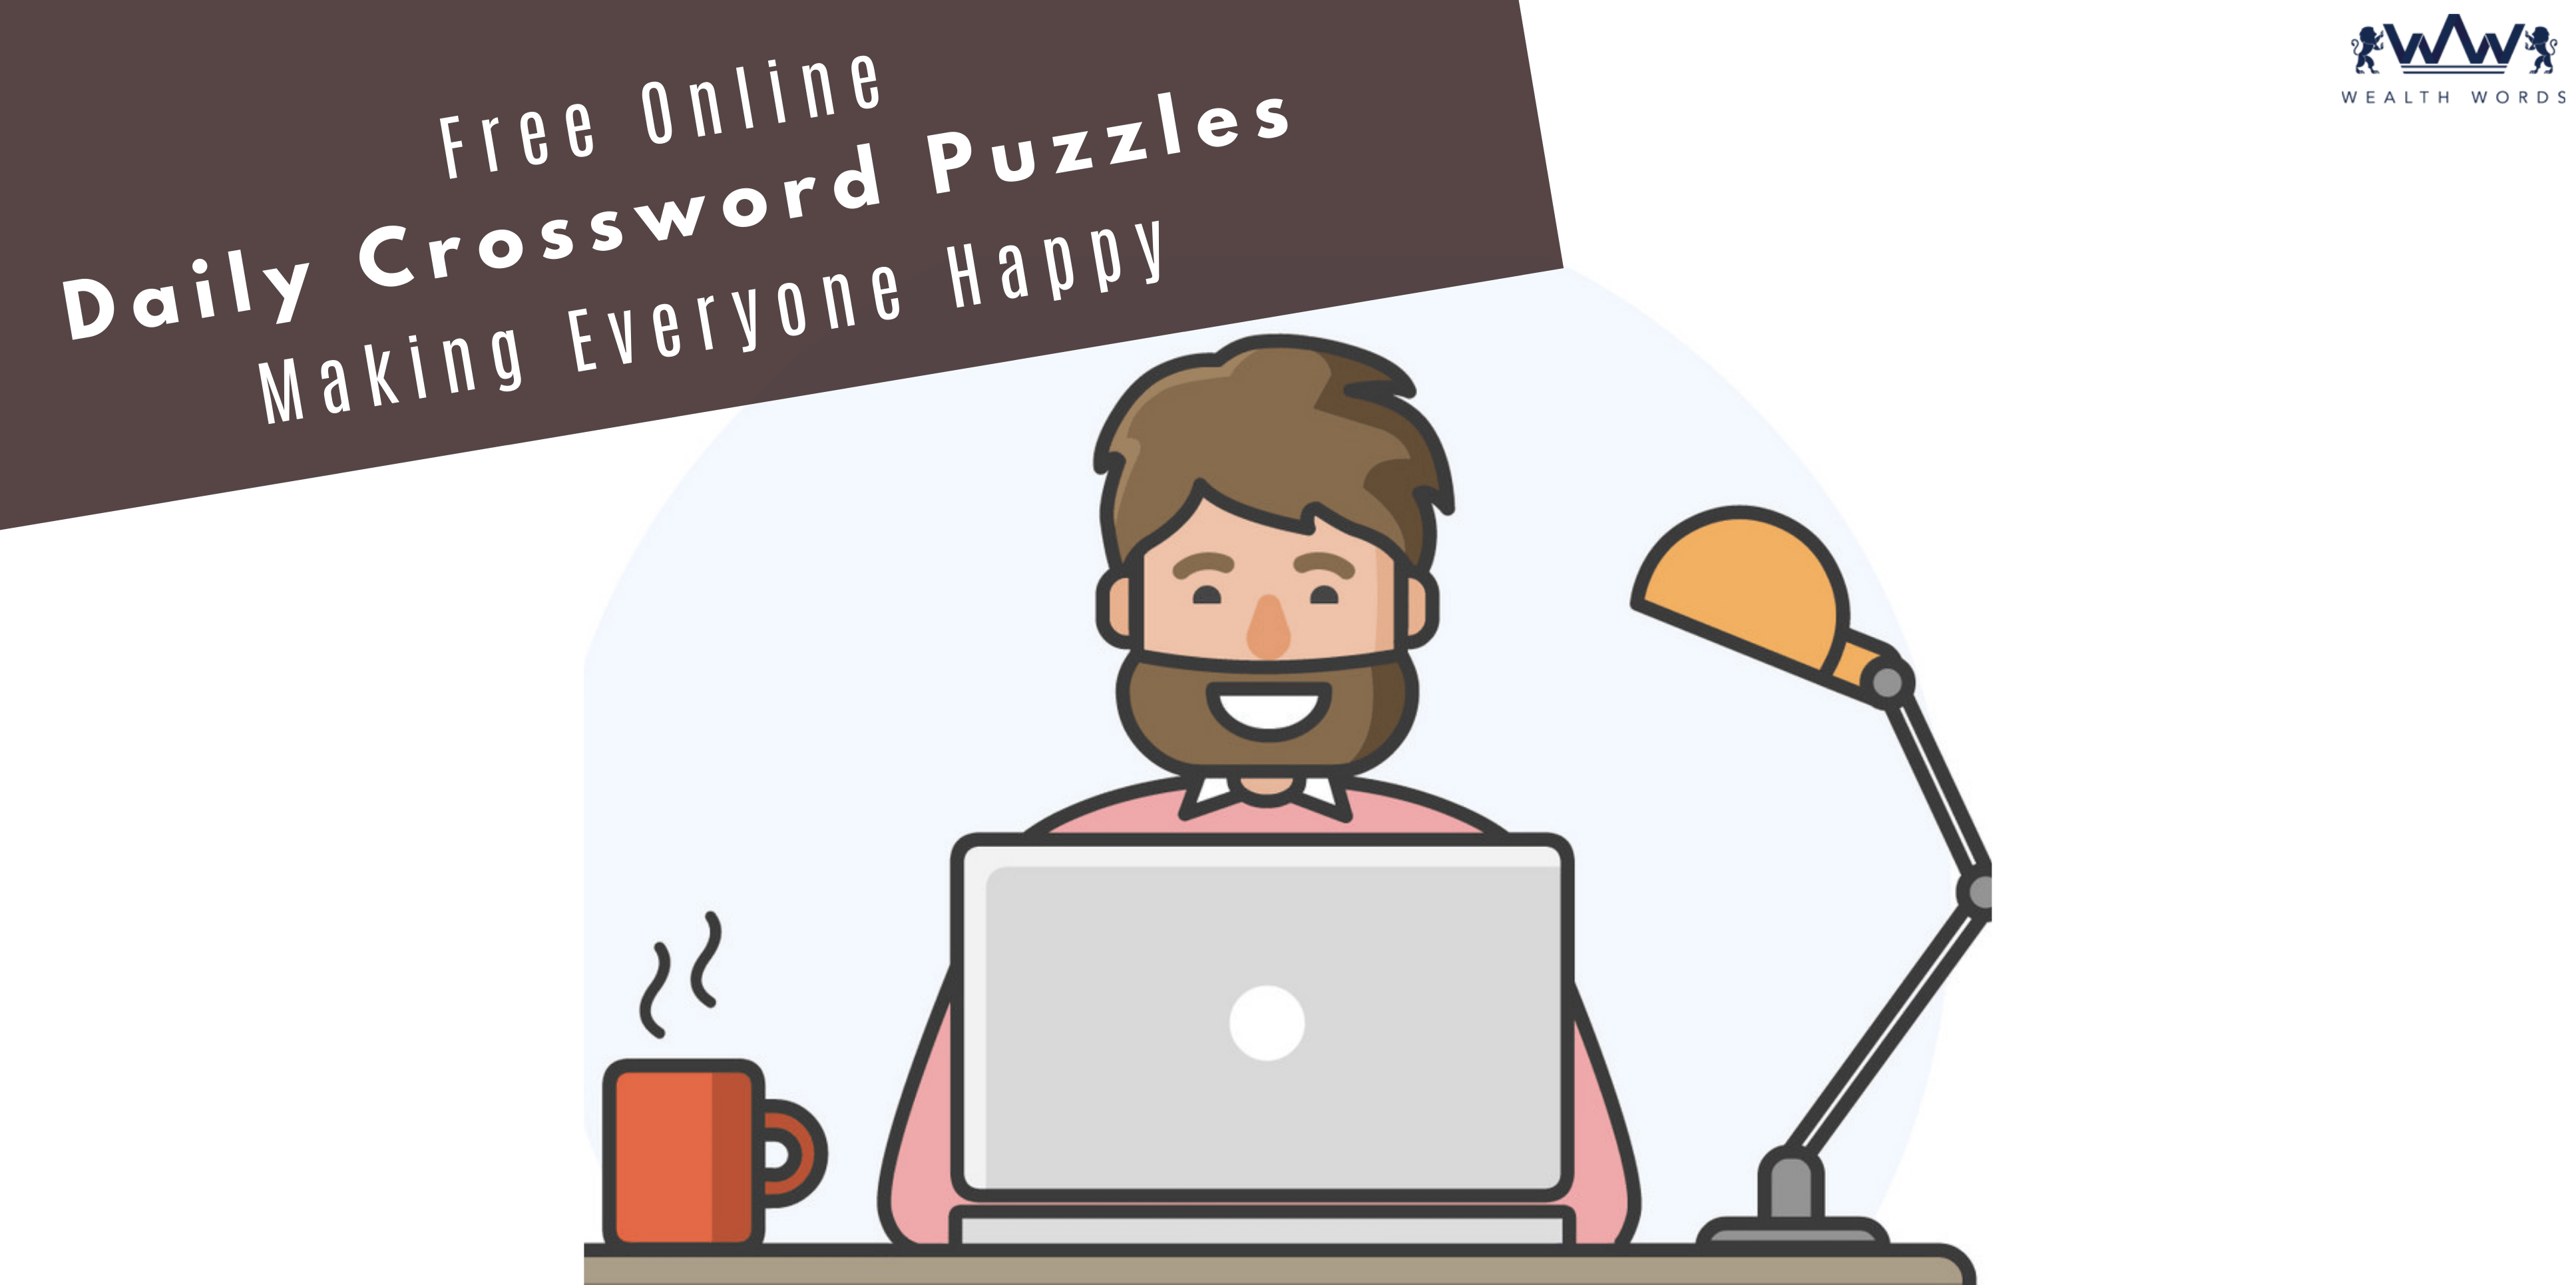 free online daily crossword